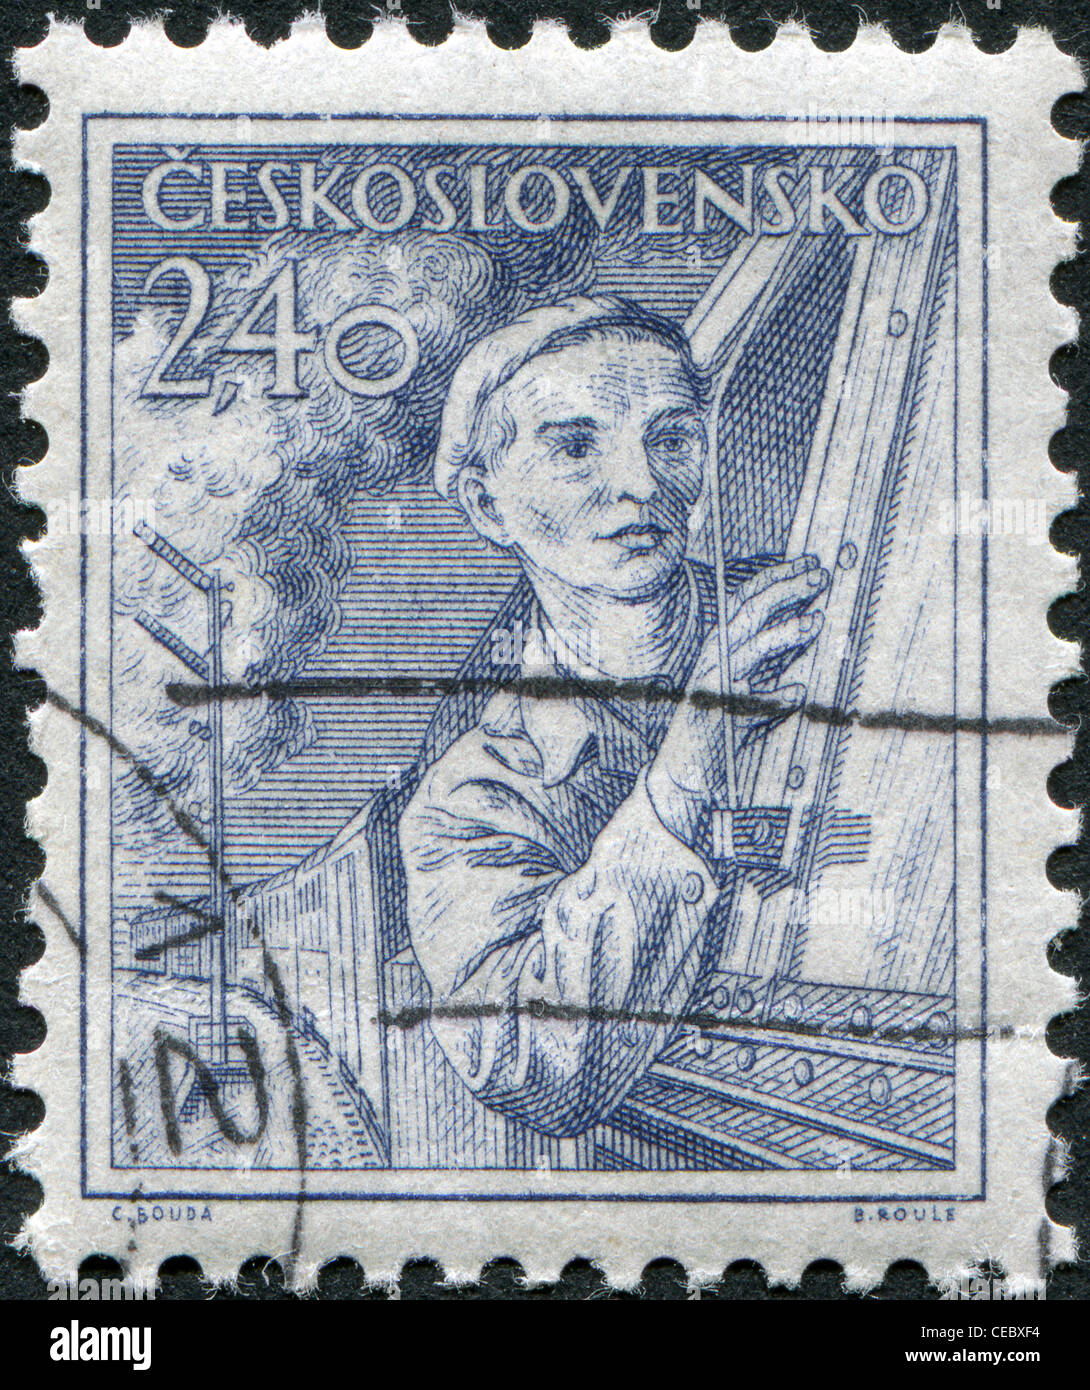 CZECHOSLOVAKIA - CIRCA 1954: A stamp printed in the Czechoslovakia, shows a locomotive engineer, circa 1954 - Stock Image